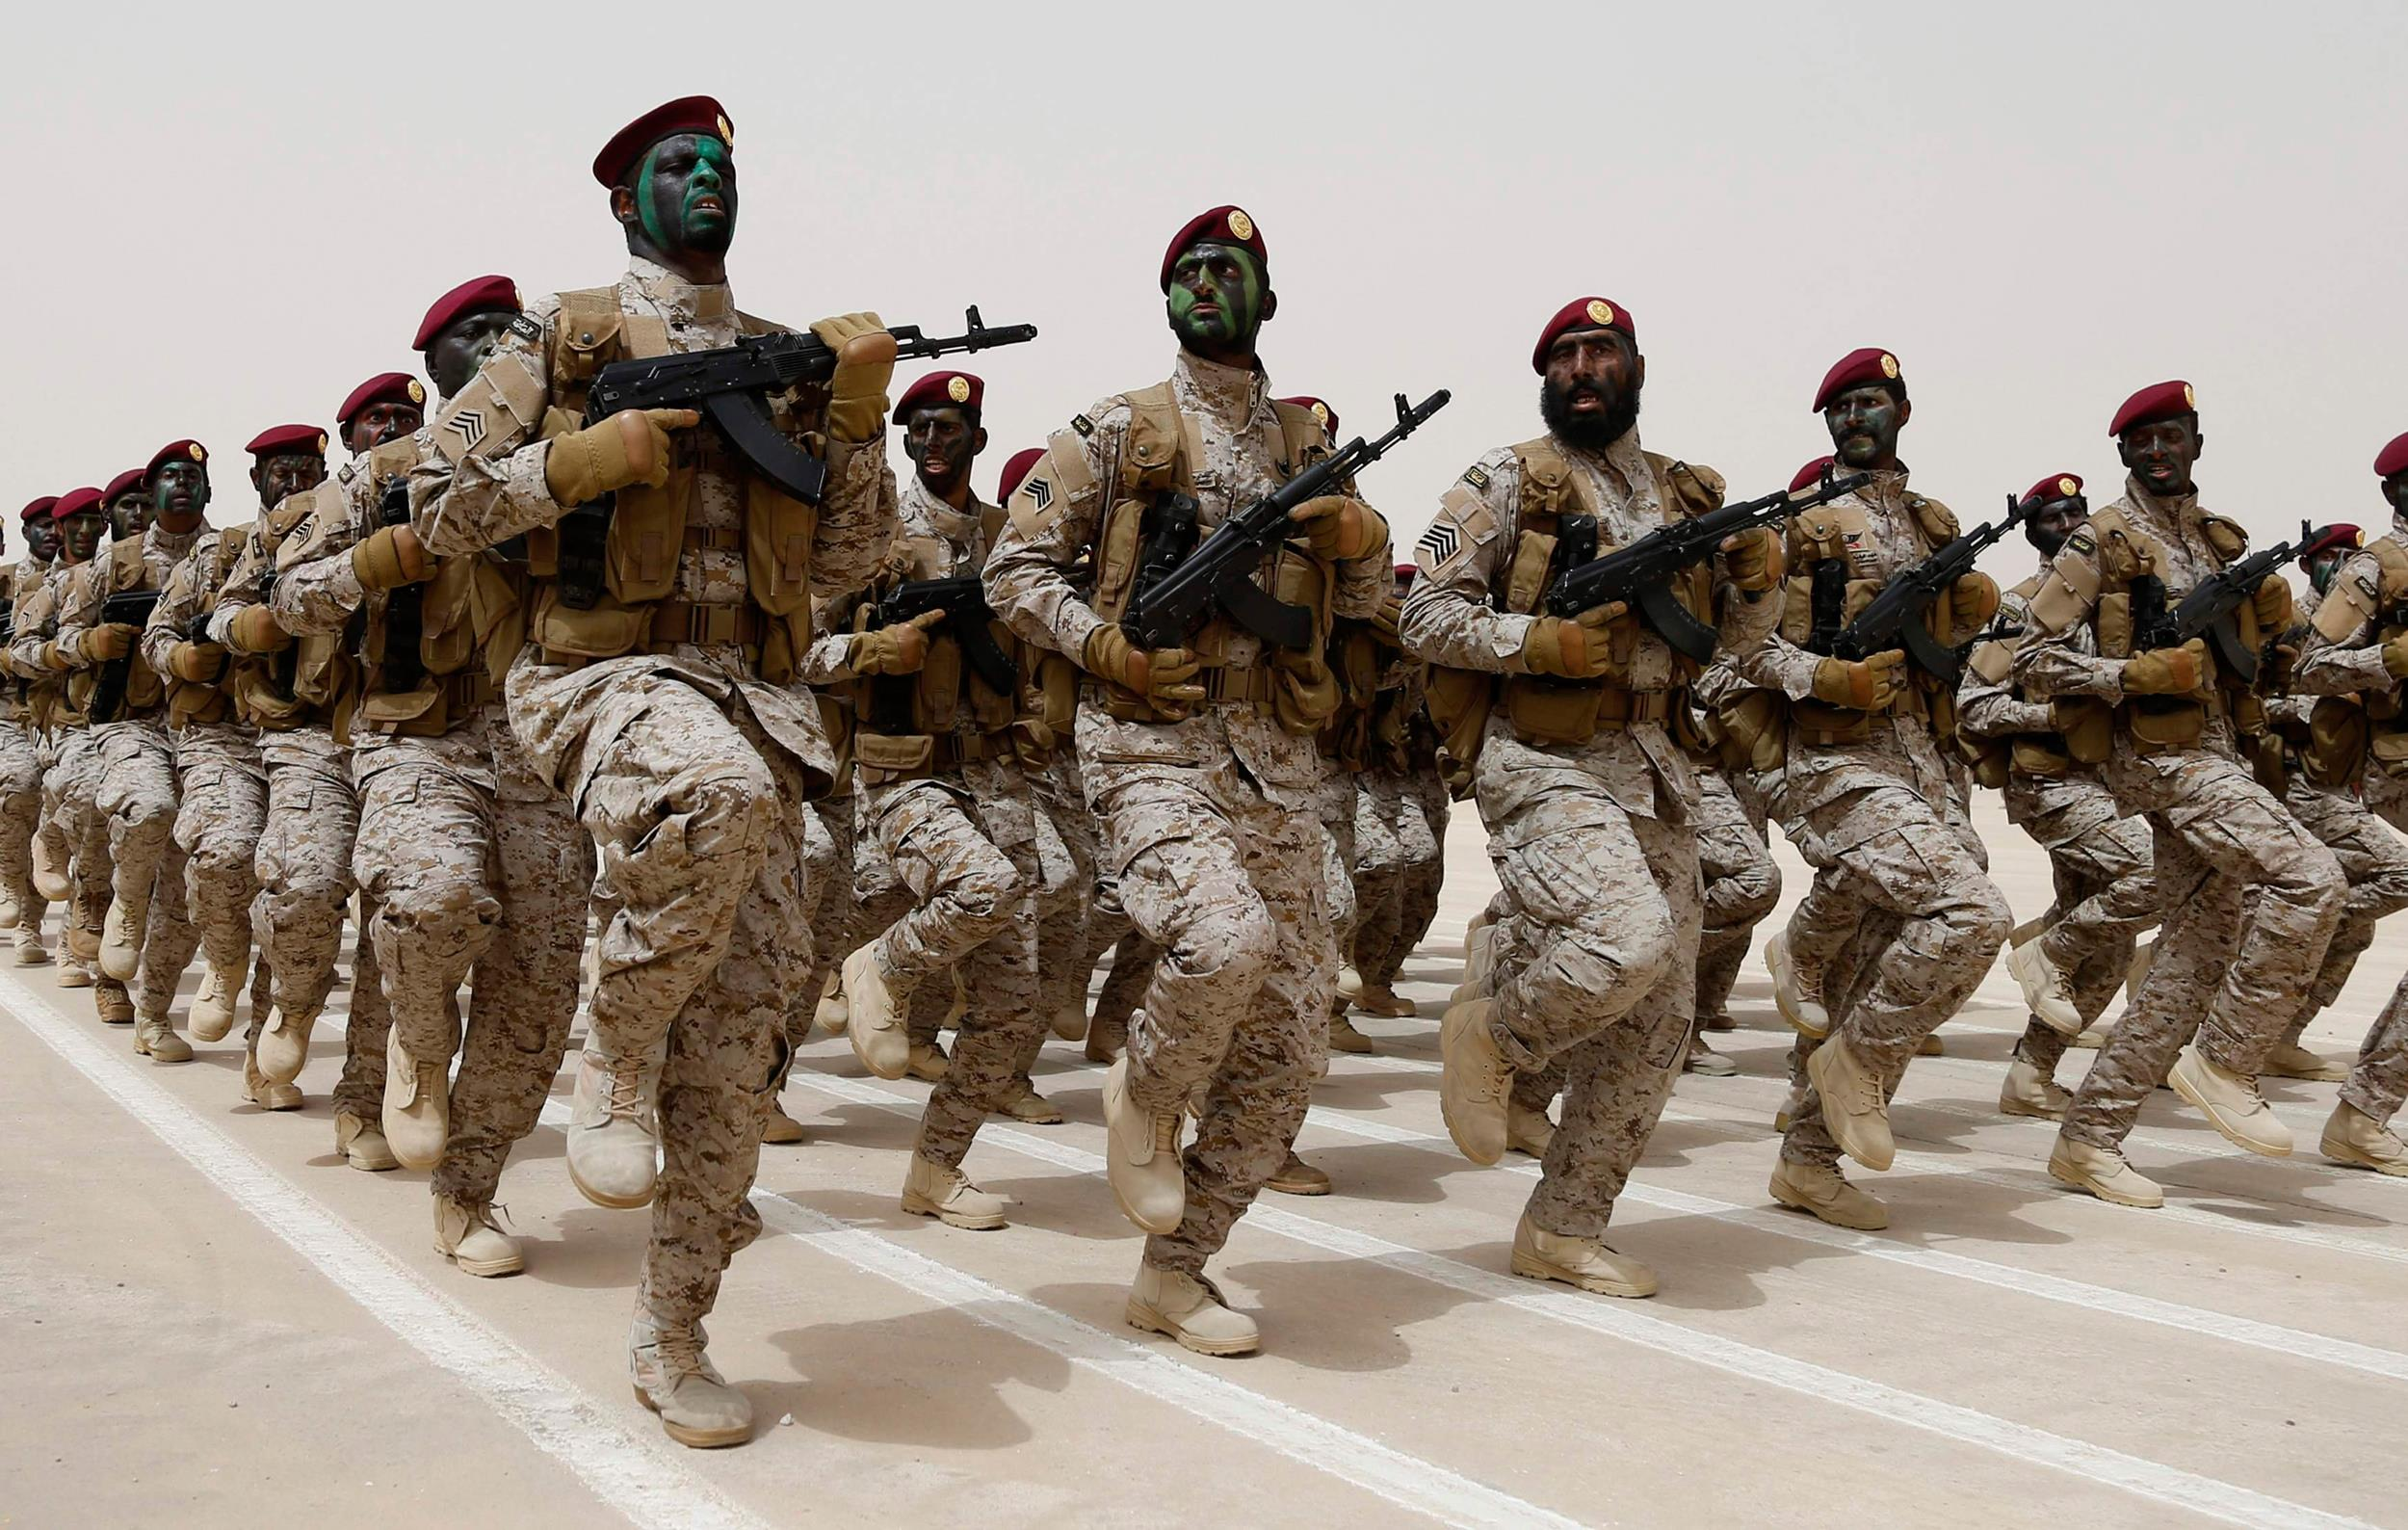 Image: Saudi soldiers march during Abdullah's Sword military drill in Hafar Al-Batin, near the border with Kuwait